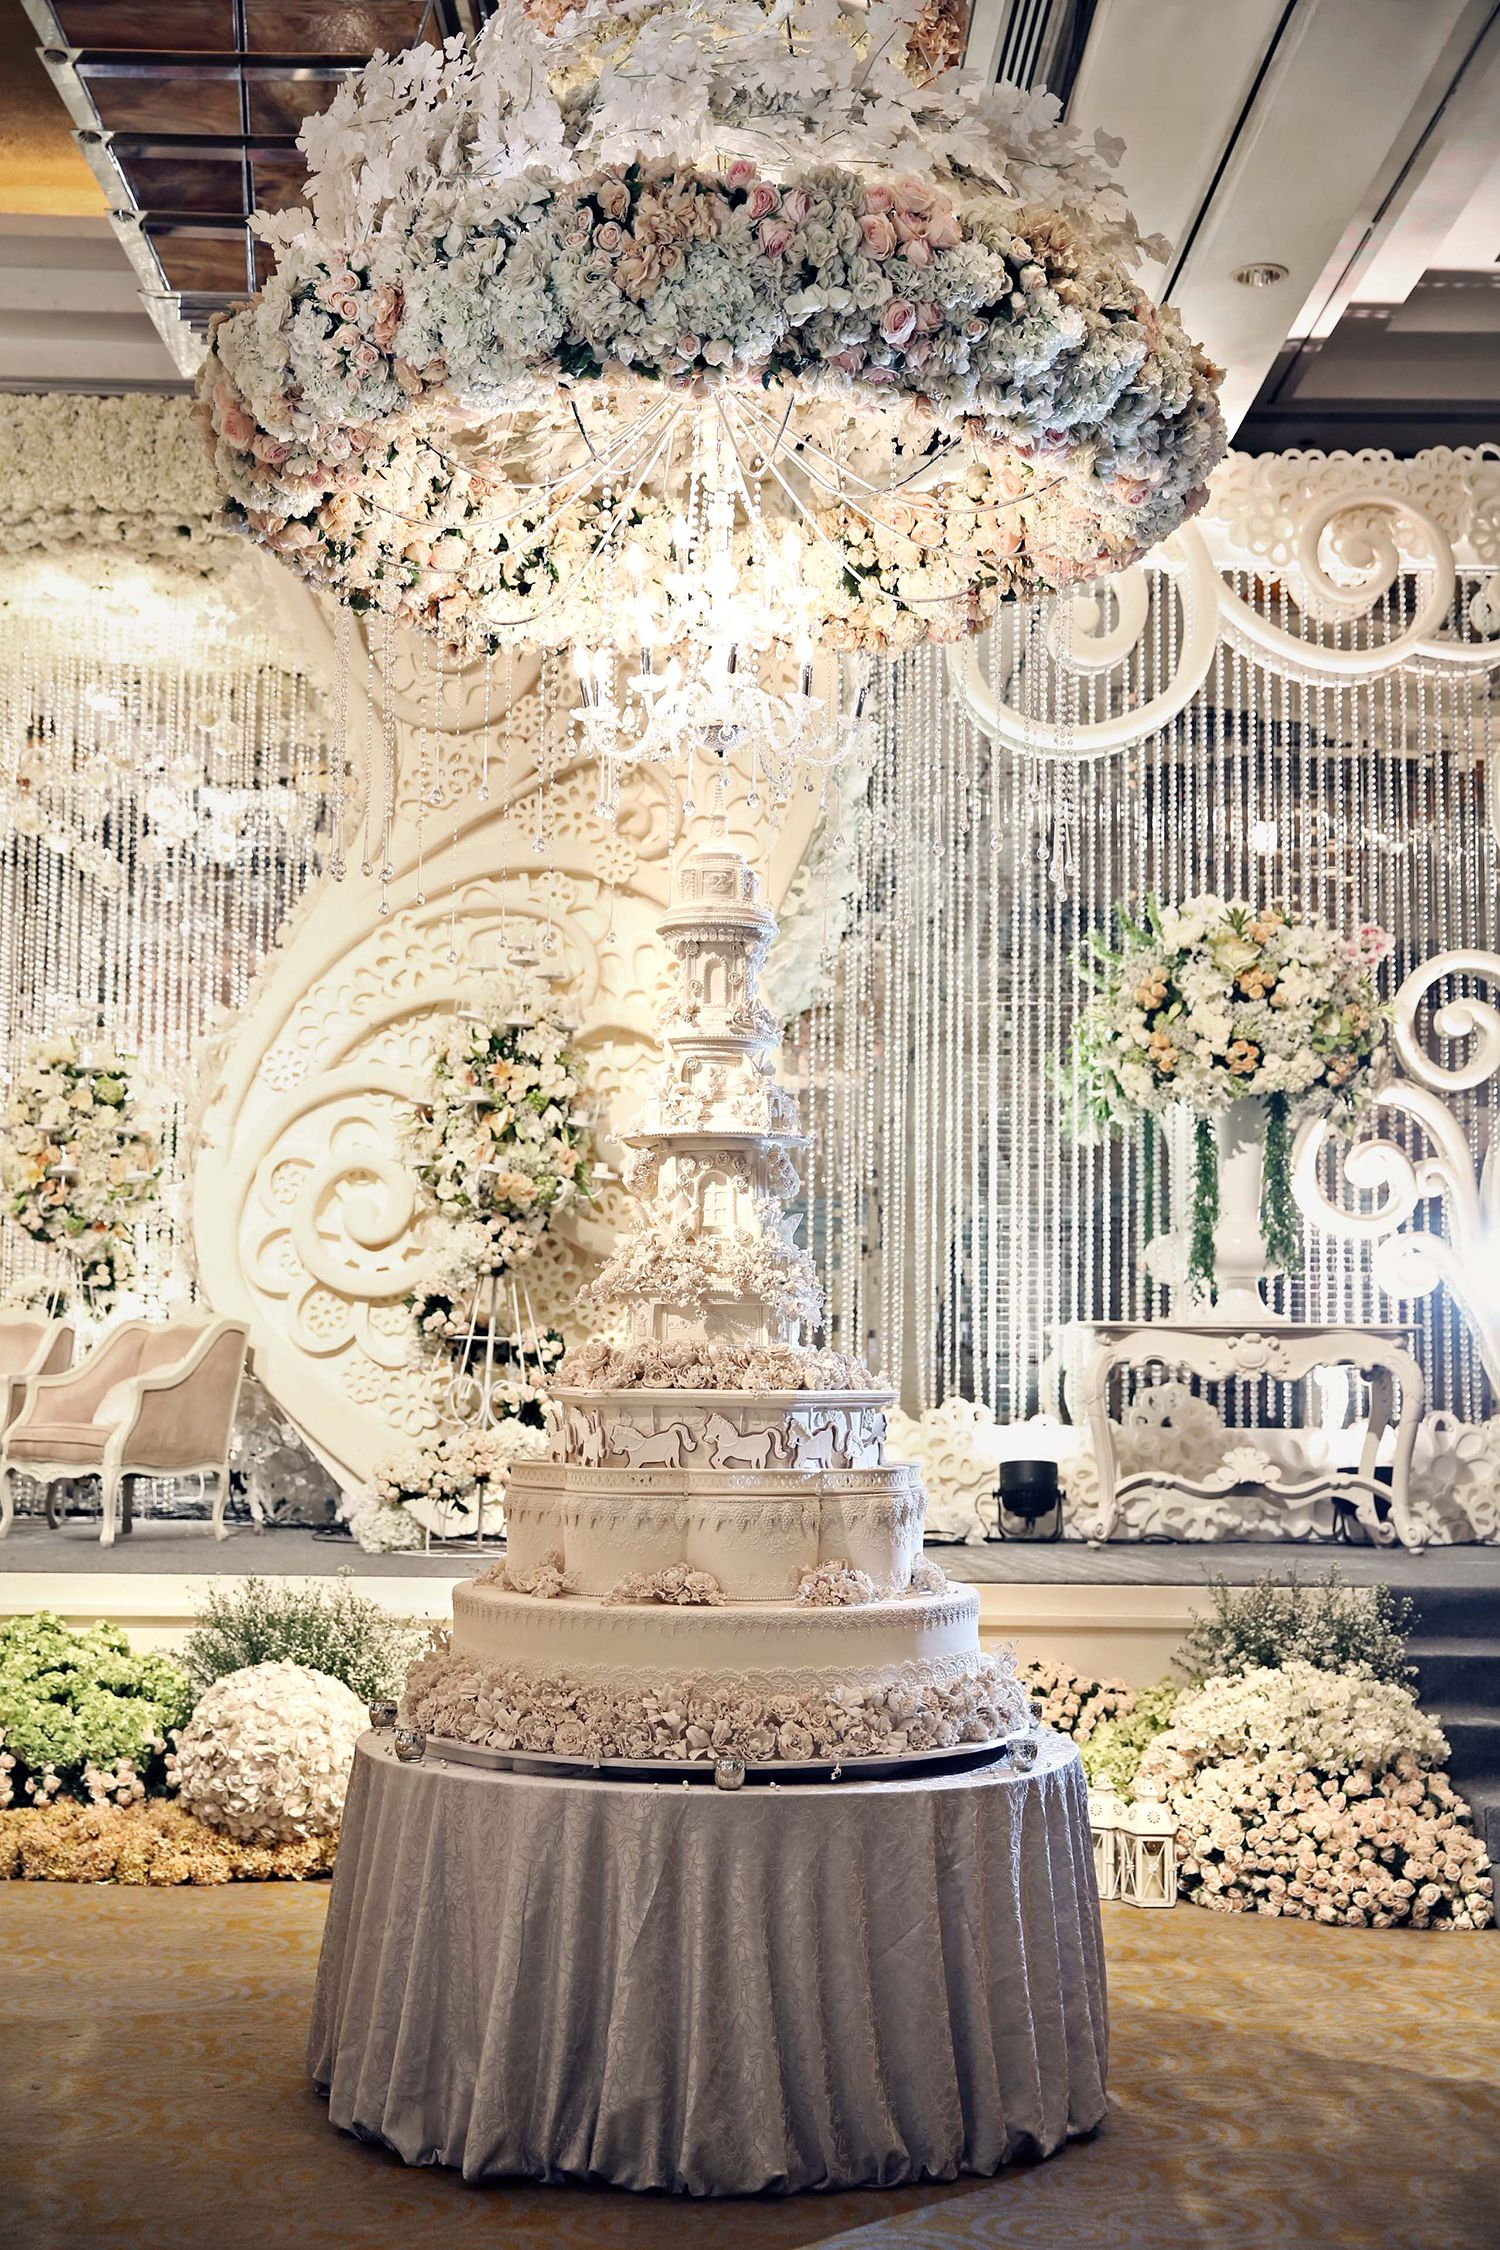 Grandeur wedding decoration in all white inspiring post by grandeur wedding decoration in all white inspiring post by bridestory everyone should read about dreamy fairy tale inspired wedding in jakarta on junglespirit Choice Image